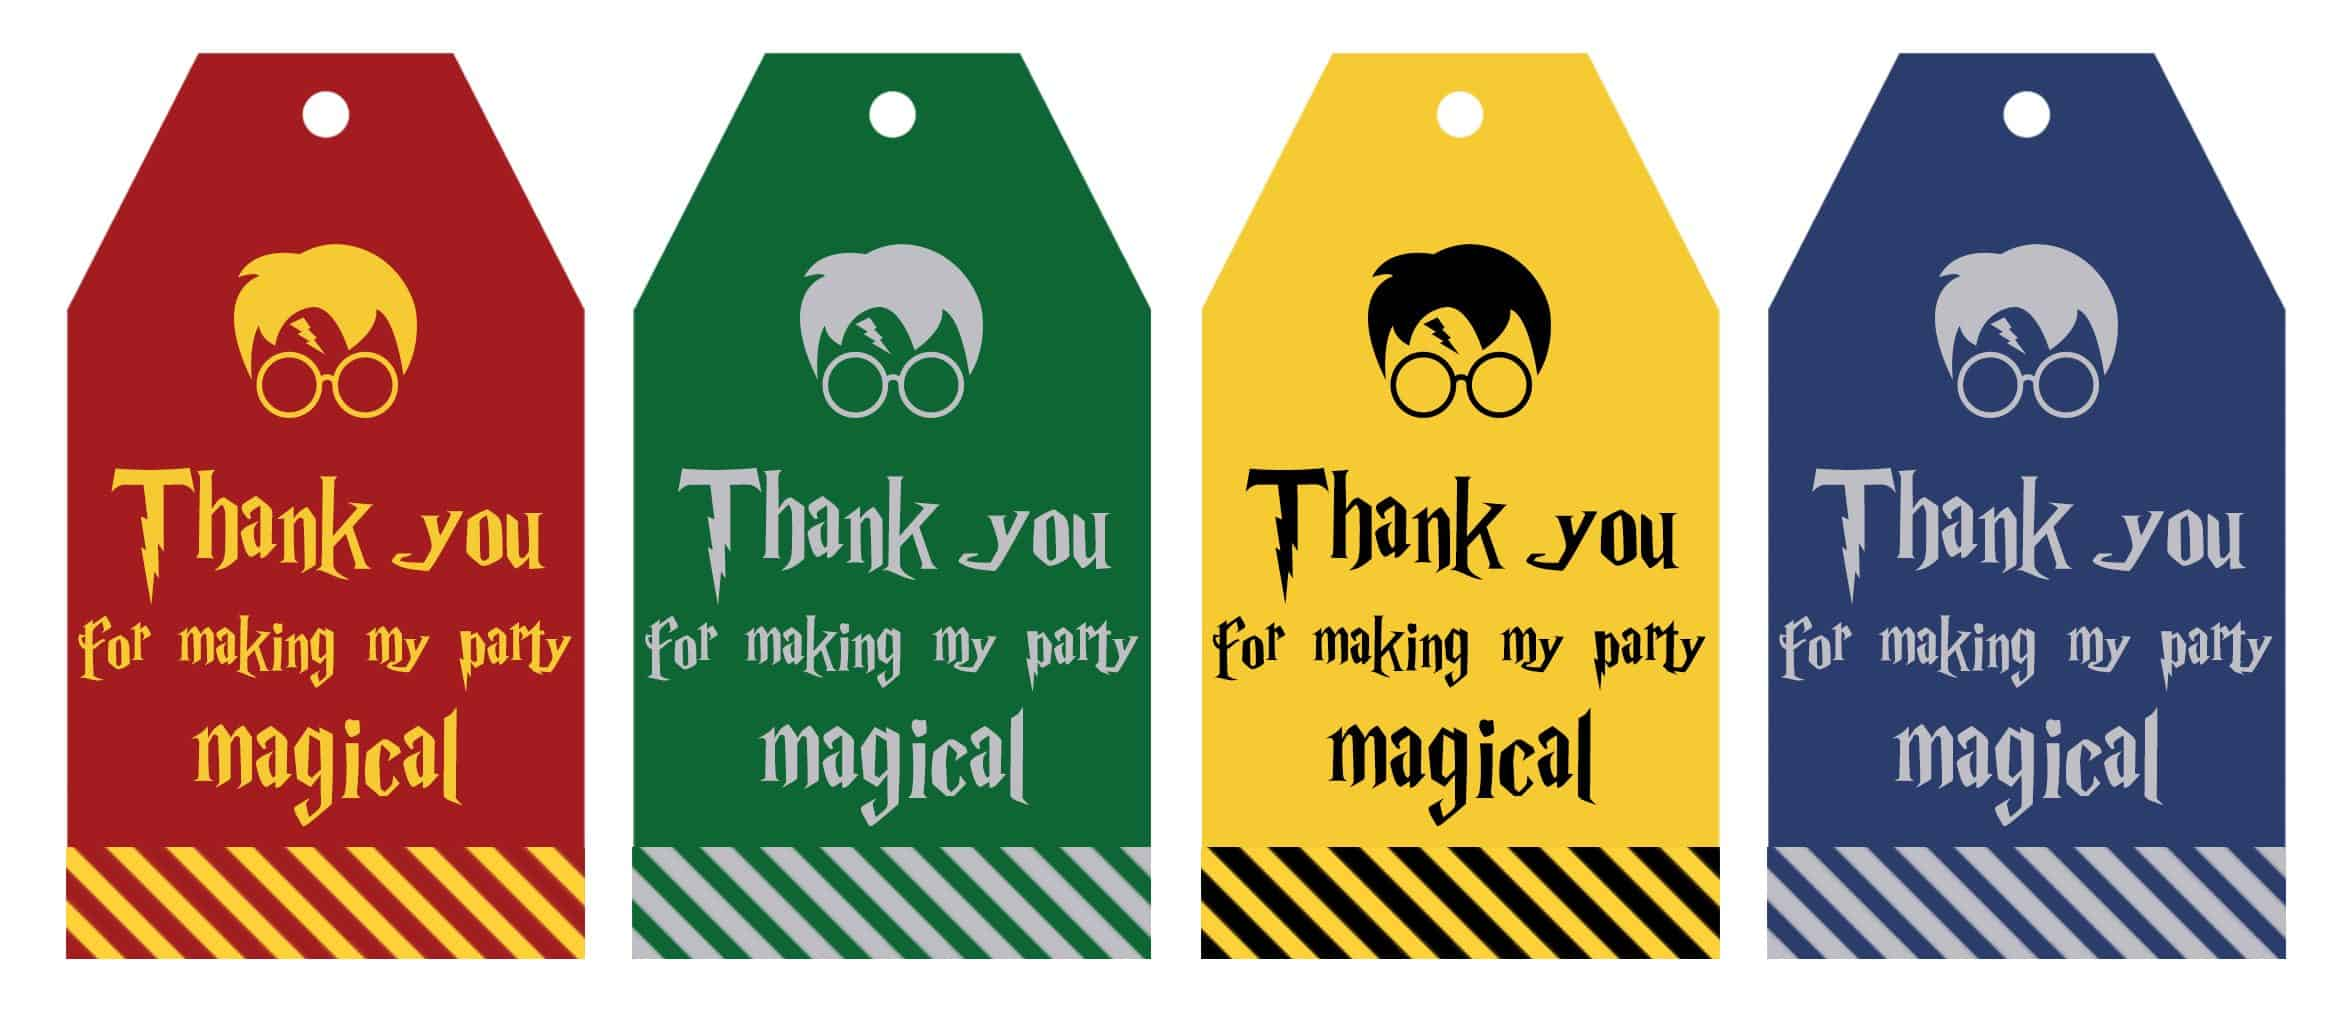 photograph regarding Harry Potter Potion Book Printable named Totally free Printable Harry Potter Social gathering Want Reward Tags - Beautiful